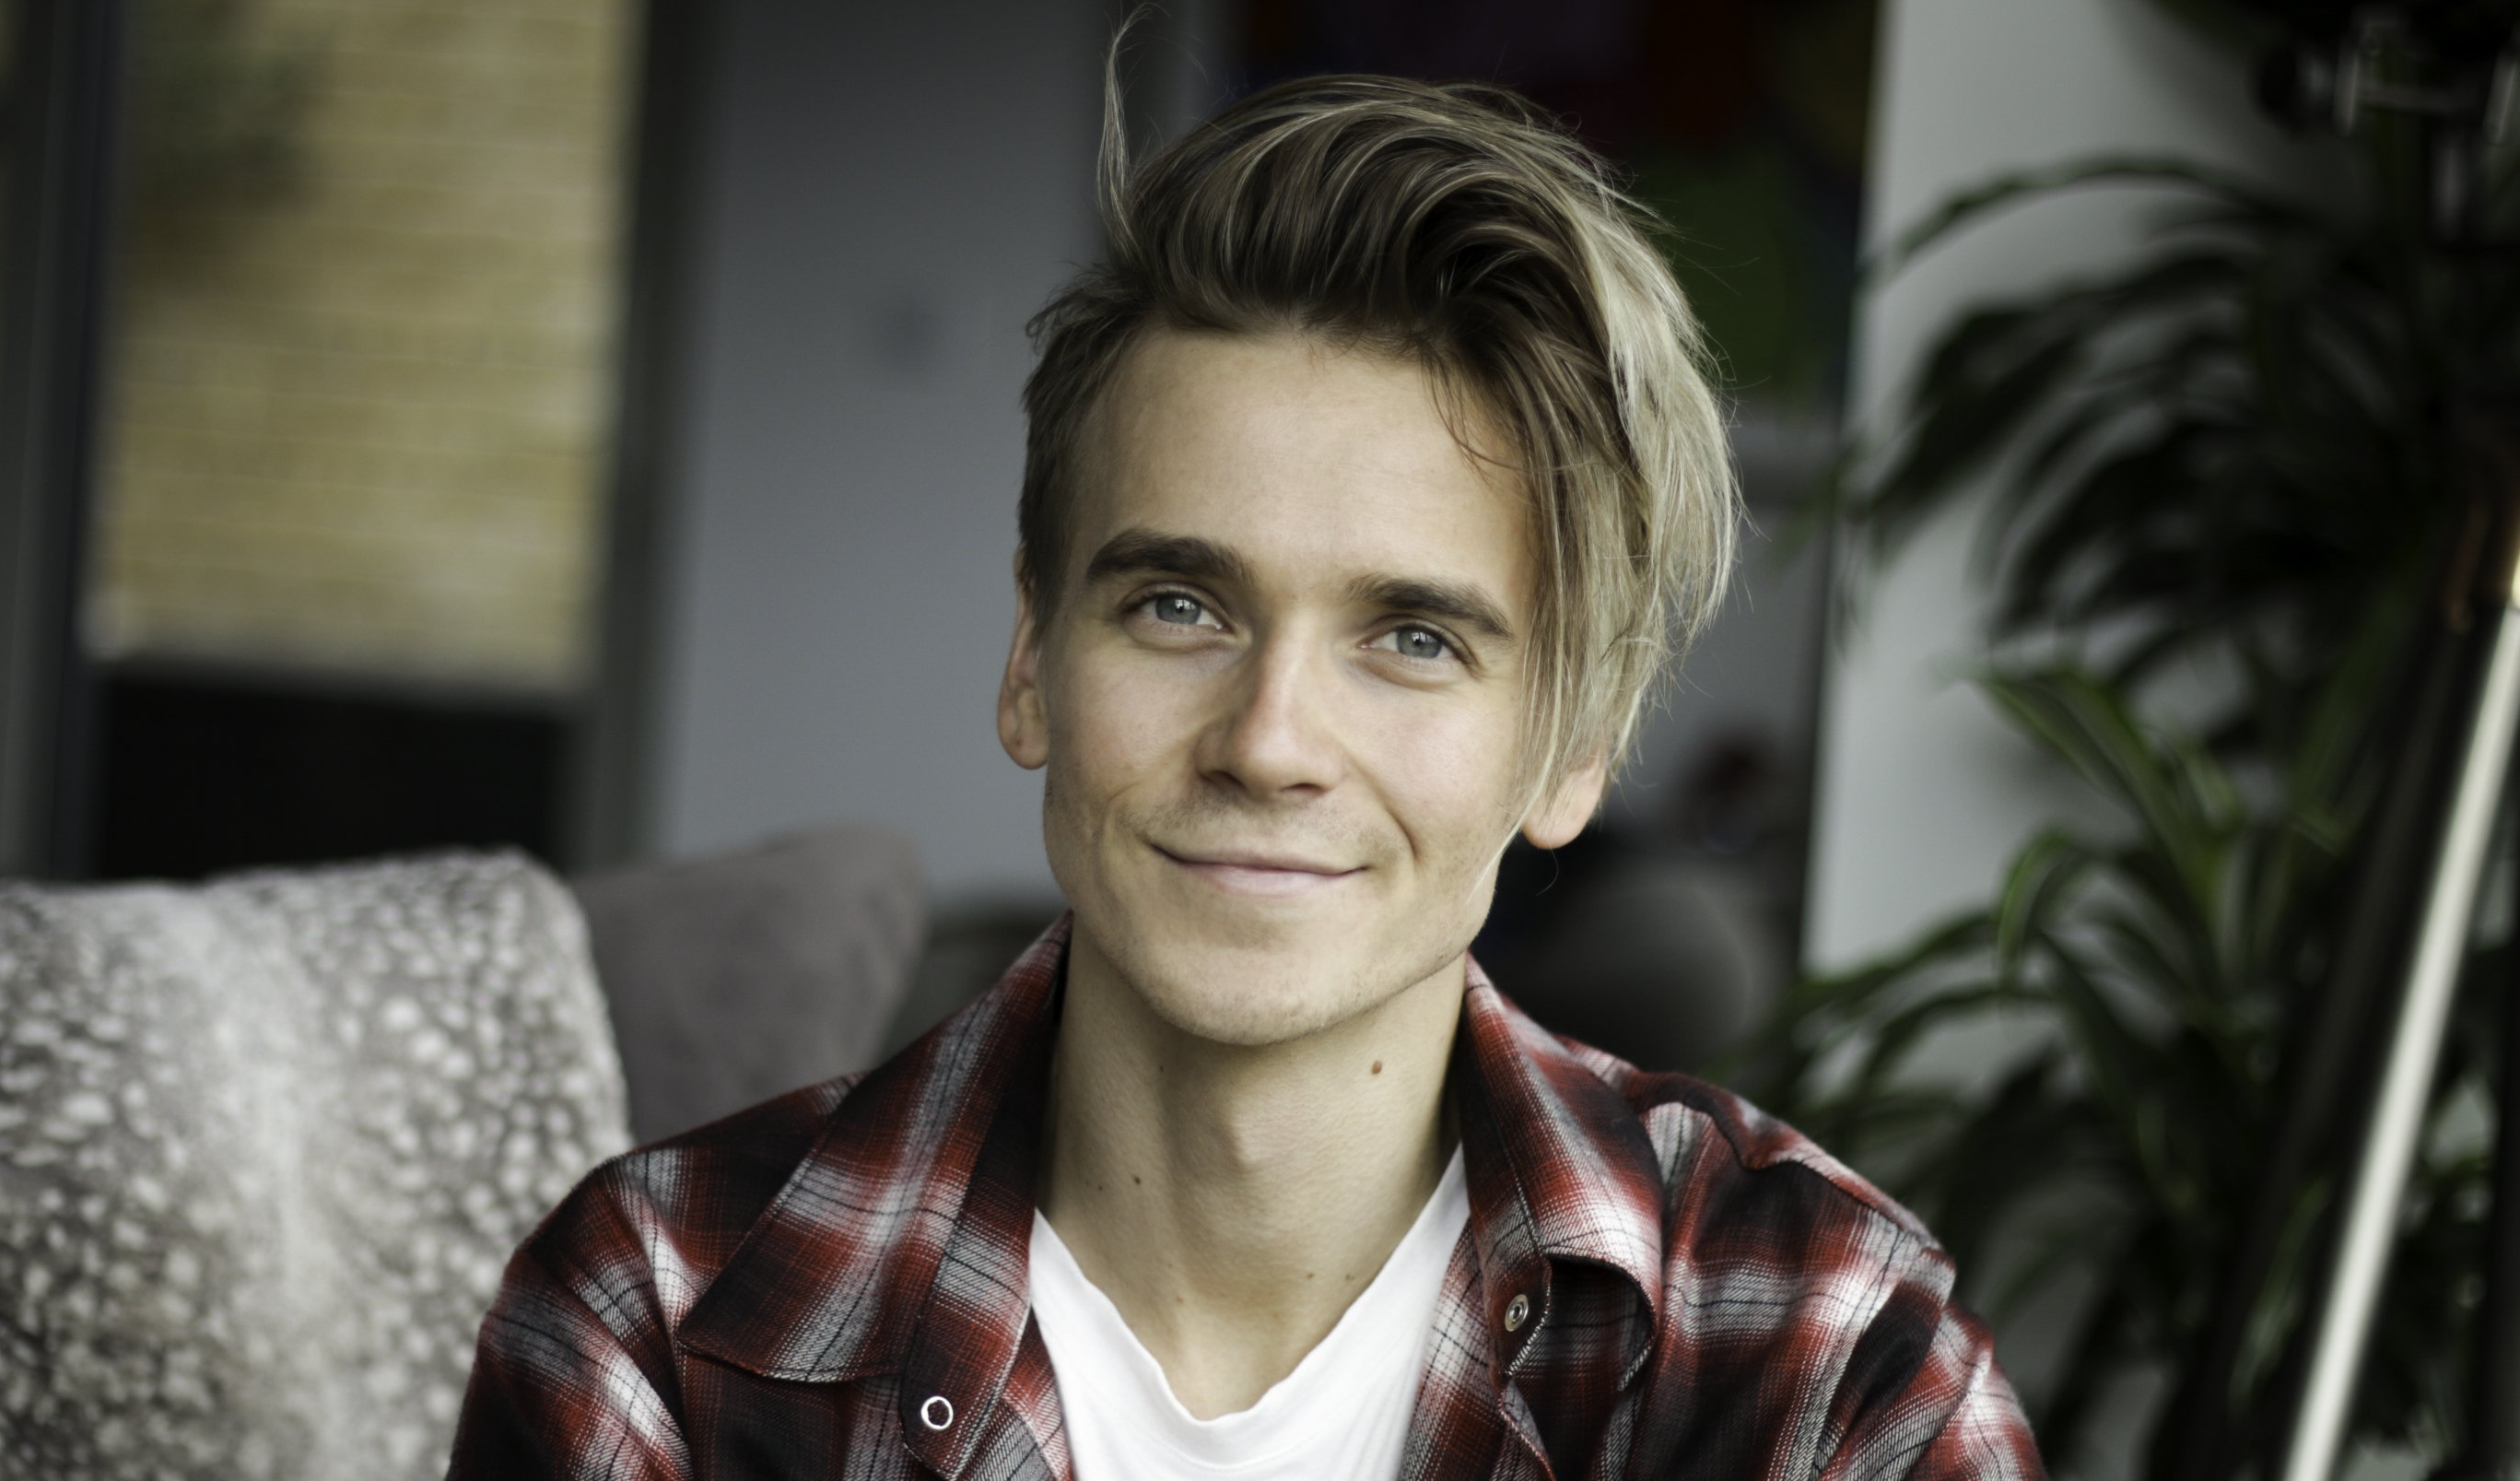 Joe Sugg headshot